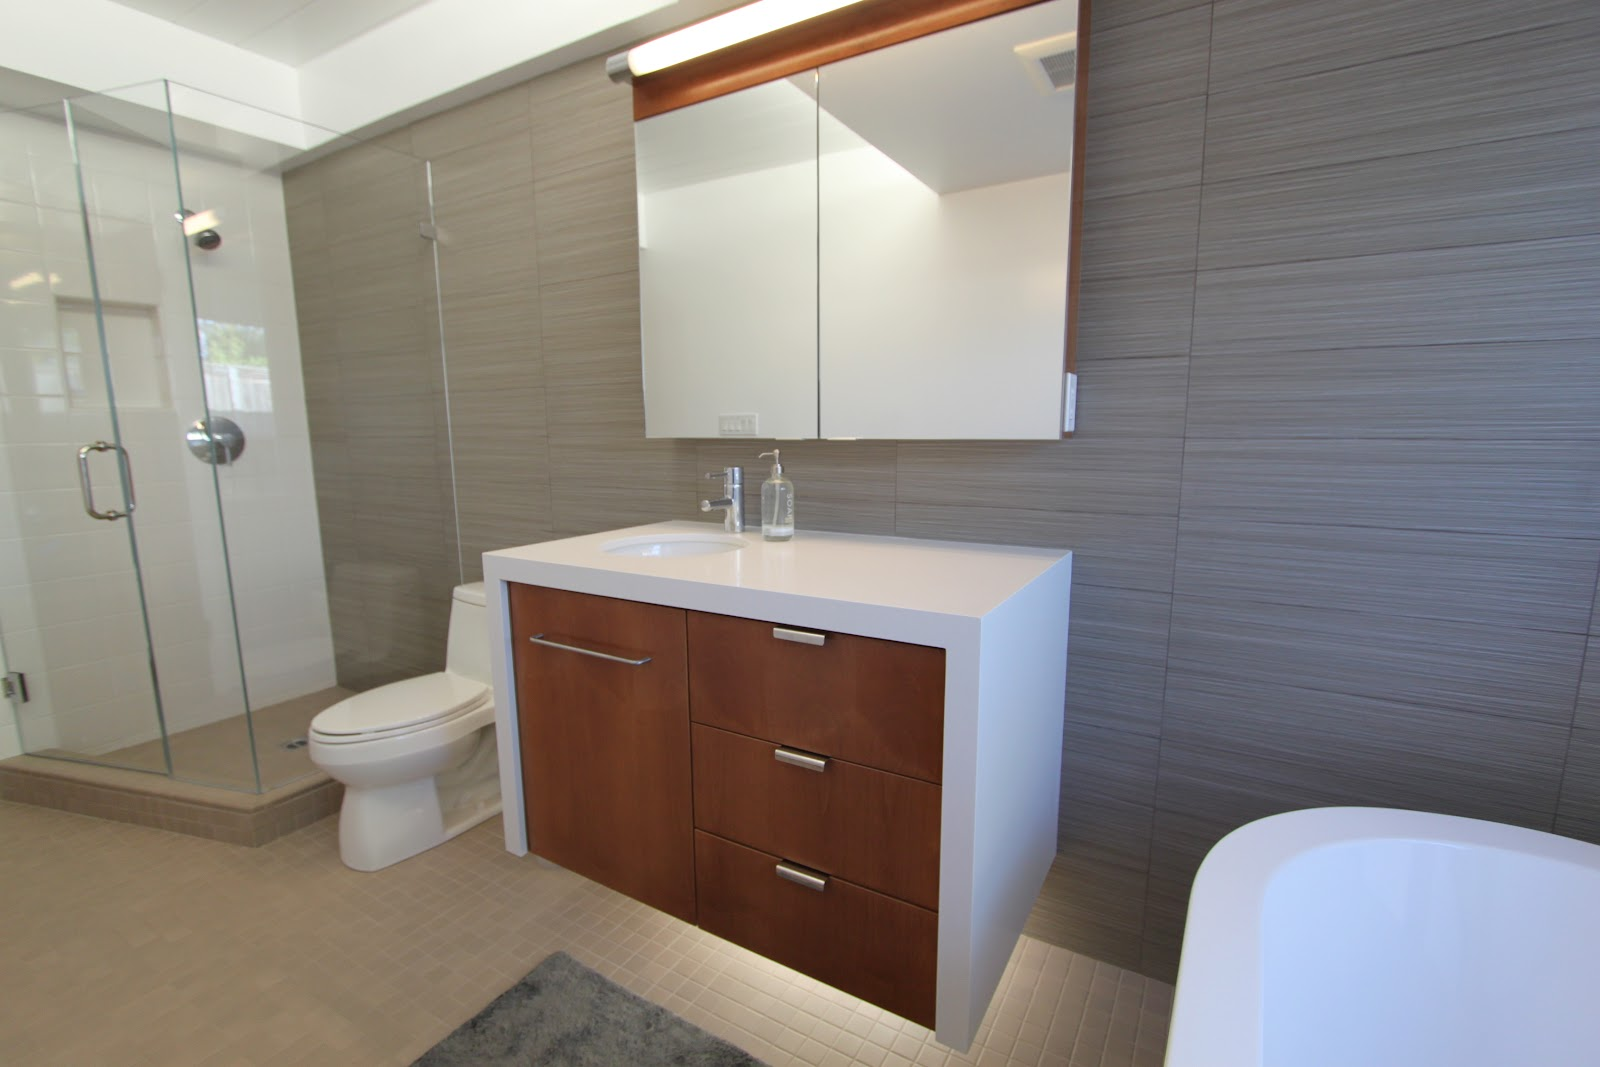 3 mid-century bathrooms remodeled | mid-century modern remodel